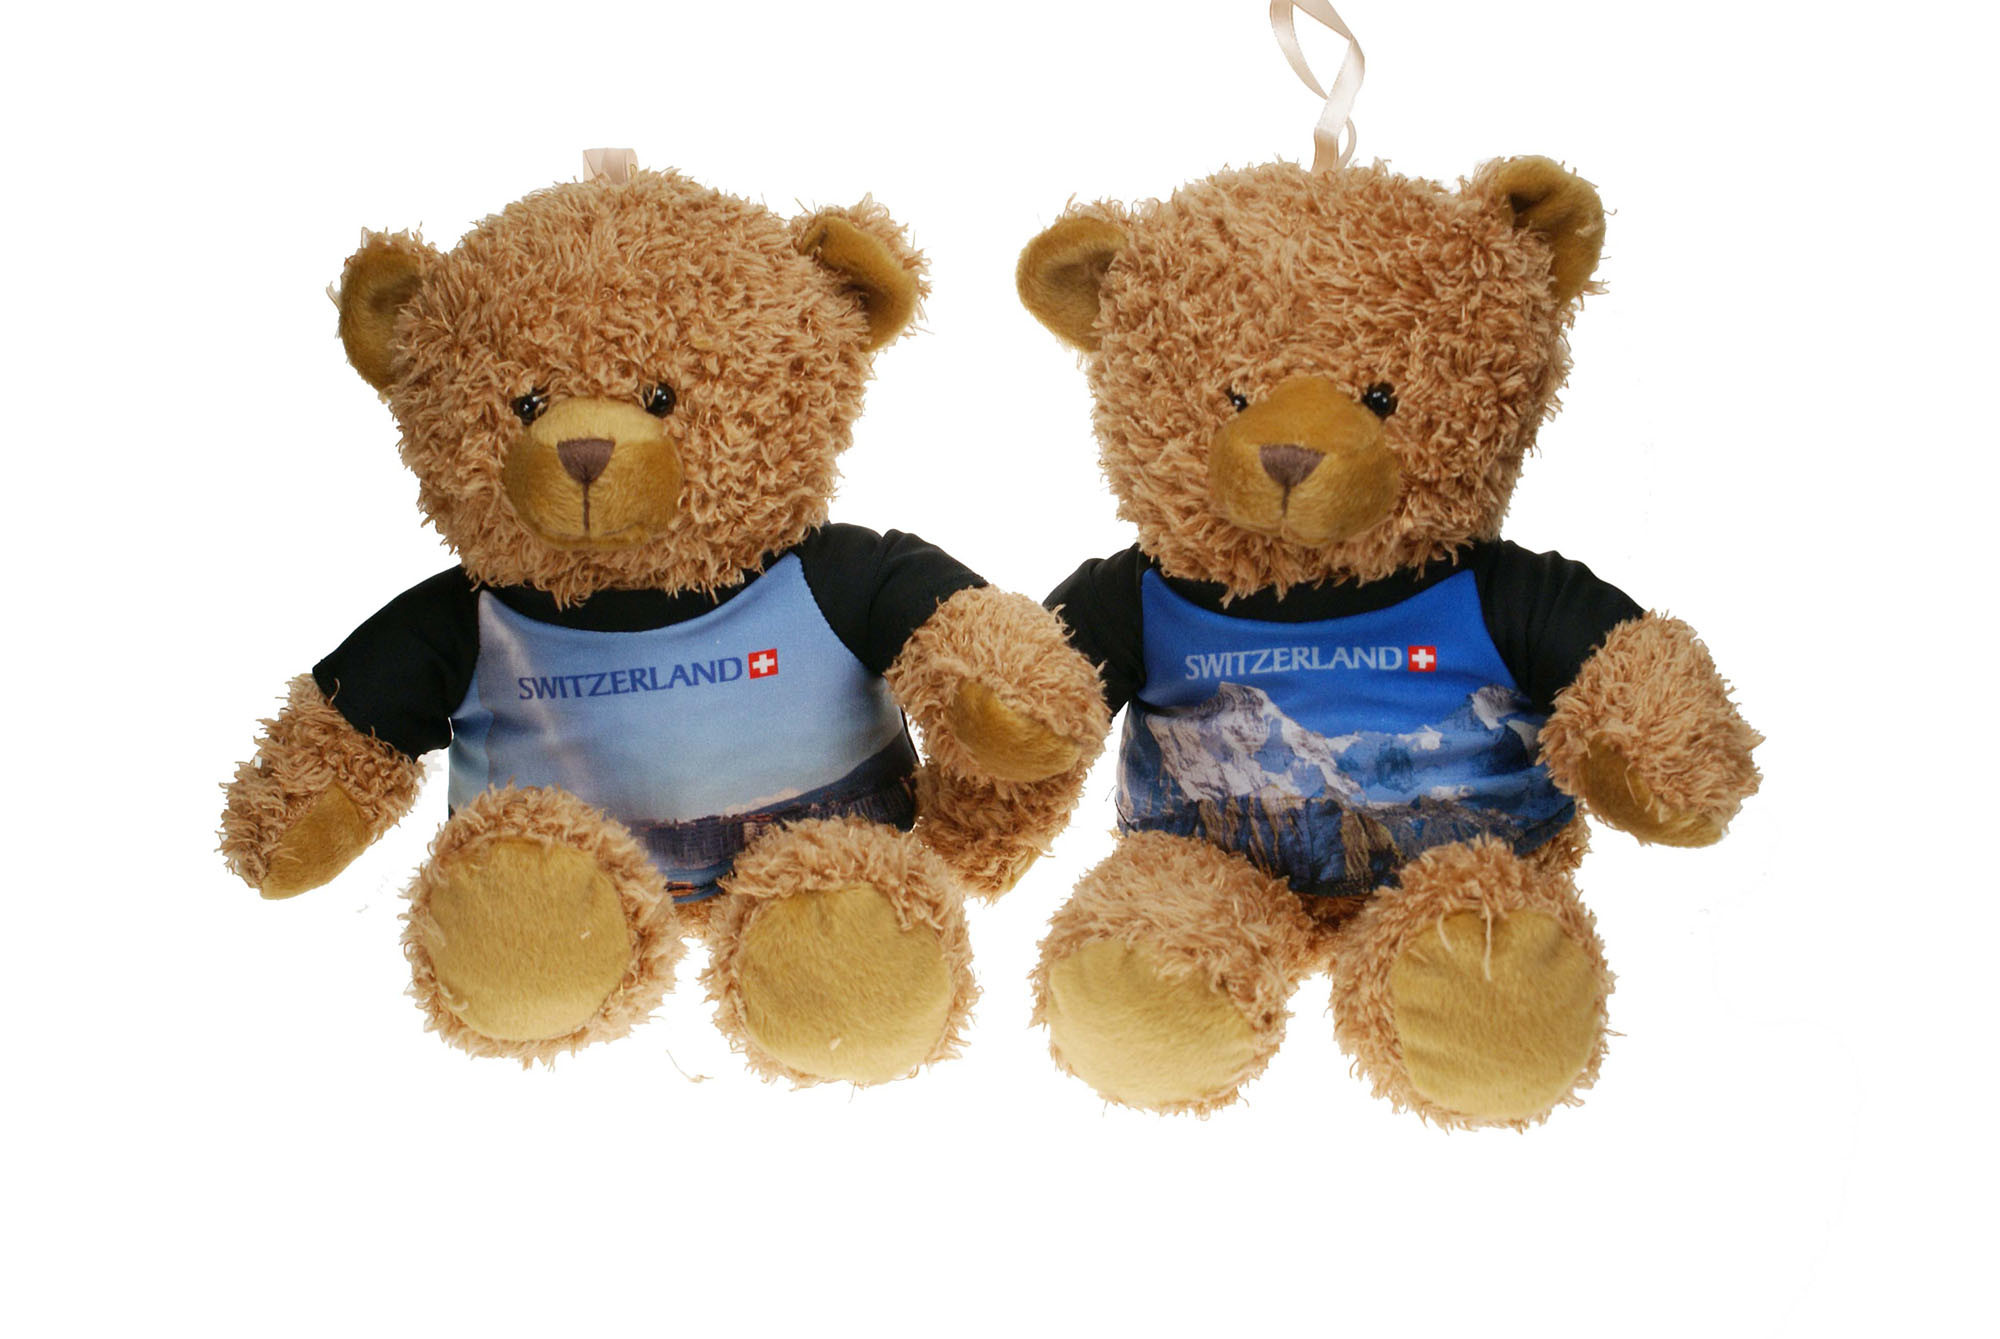 China Personalized Plush Toys - China Stuffed Toys, Gift Toys